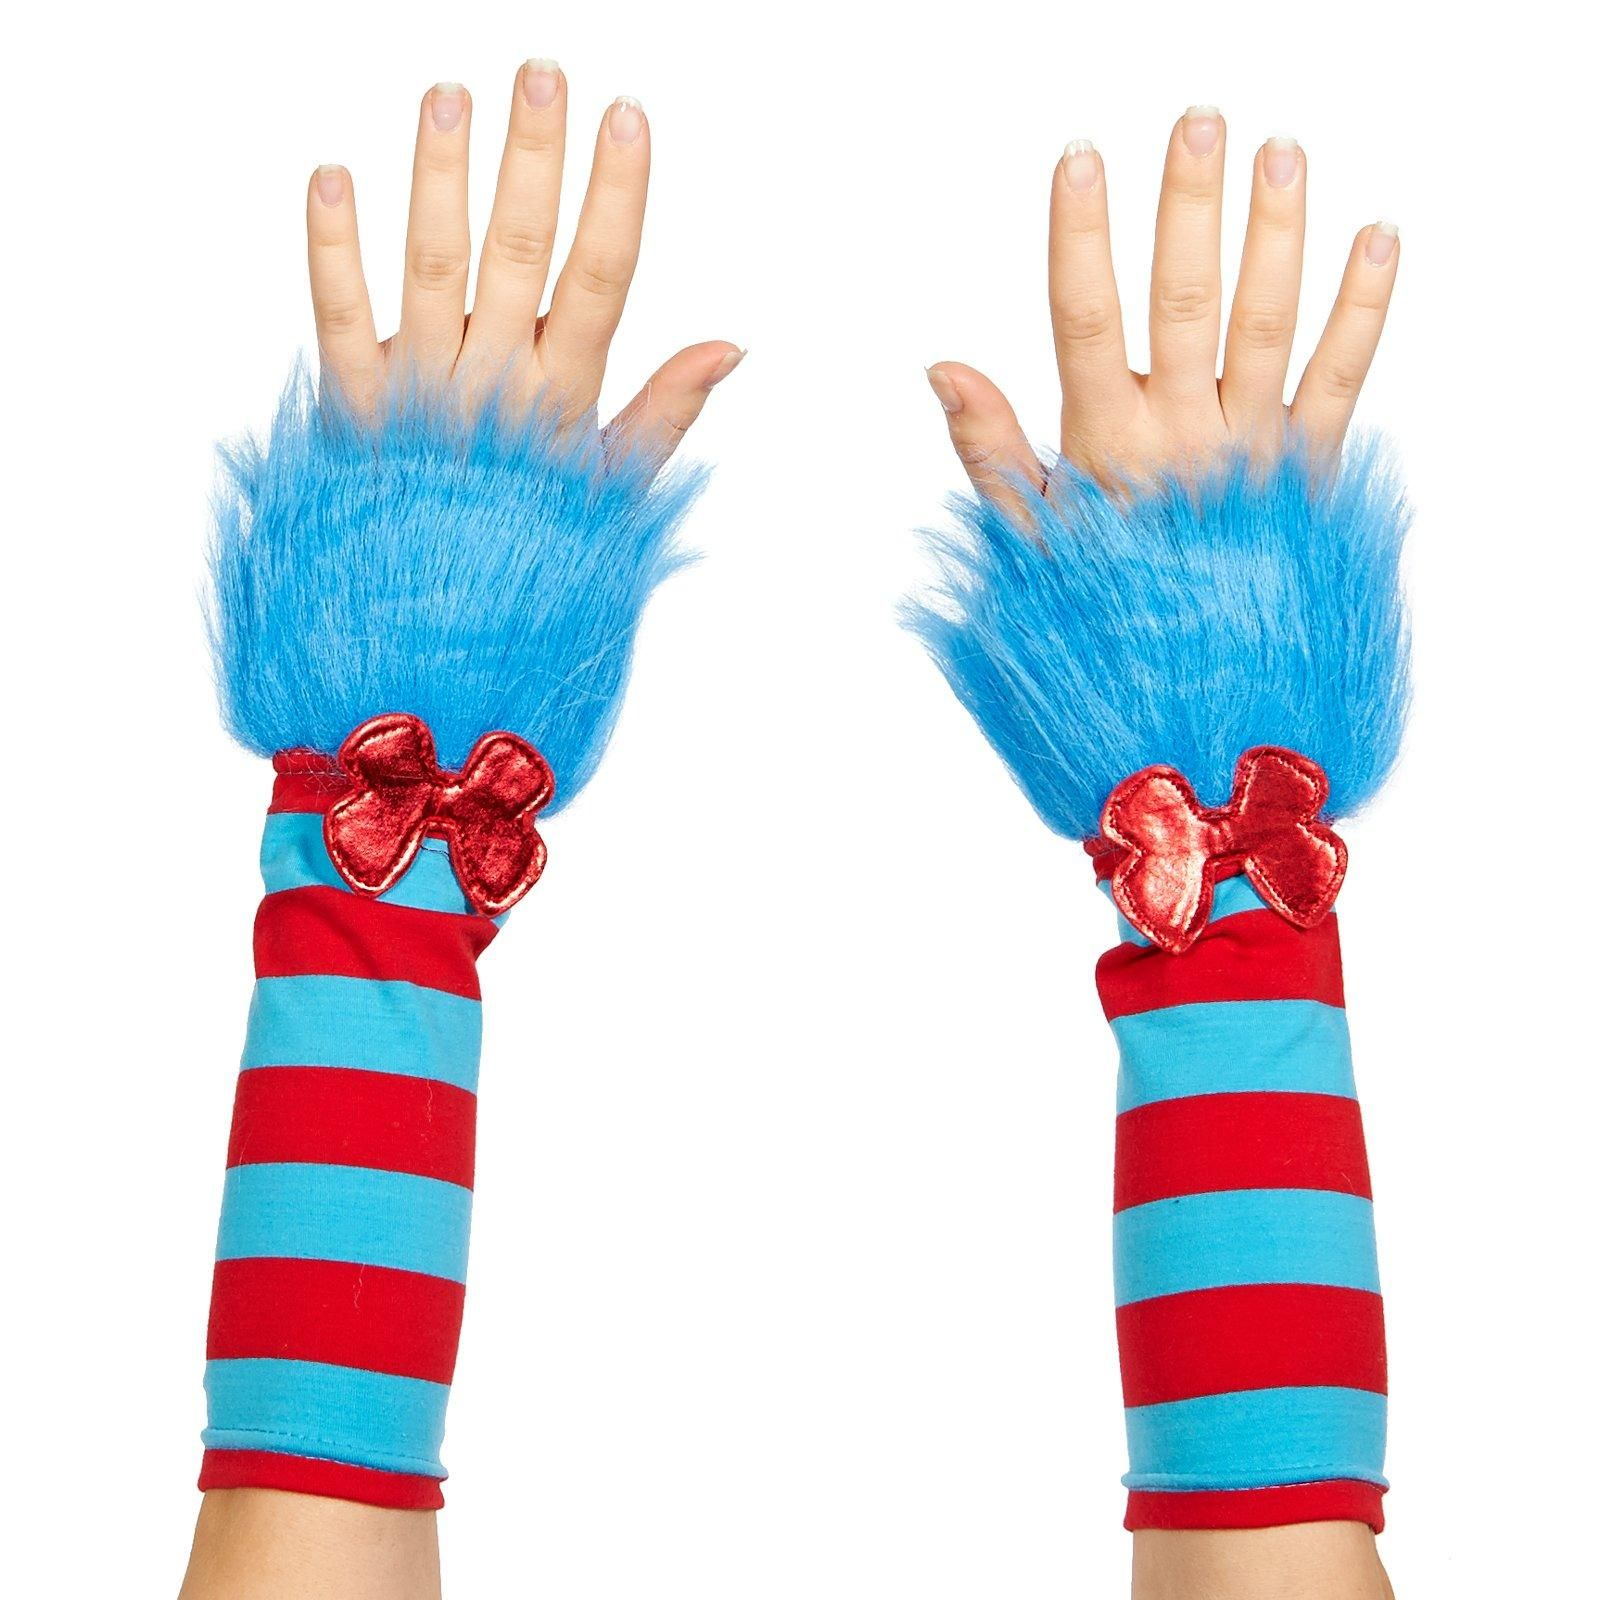 Seuss Halloween Adult Costume Accessory Thing 1 2 Fuzzy Glovettes Gloves Dr